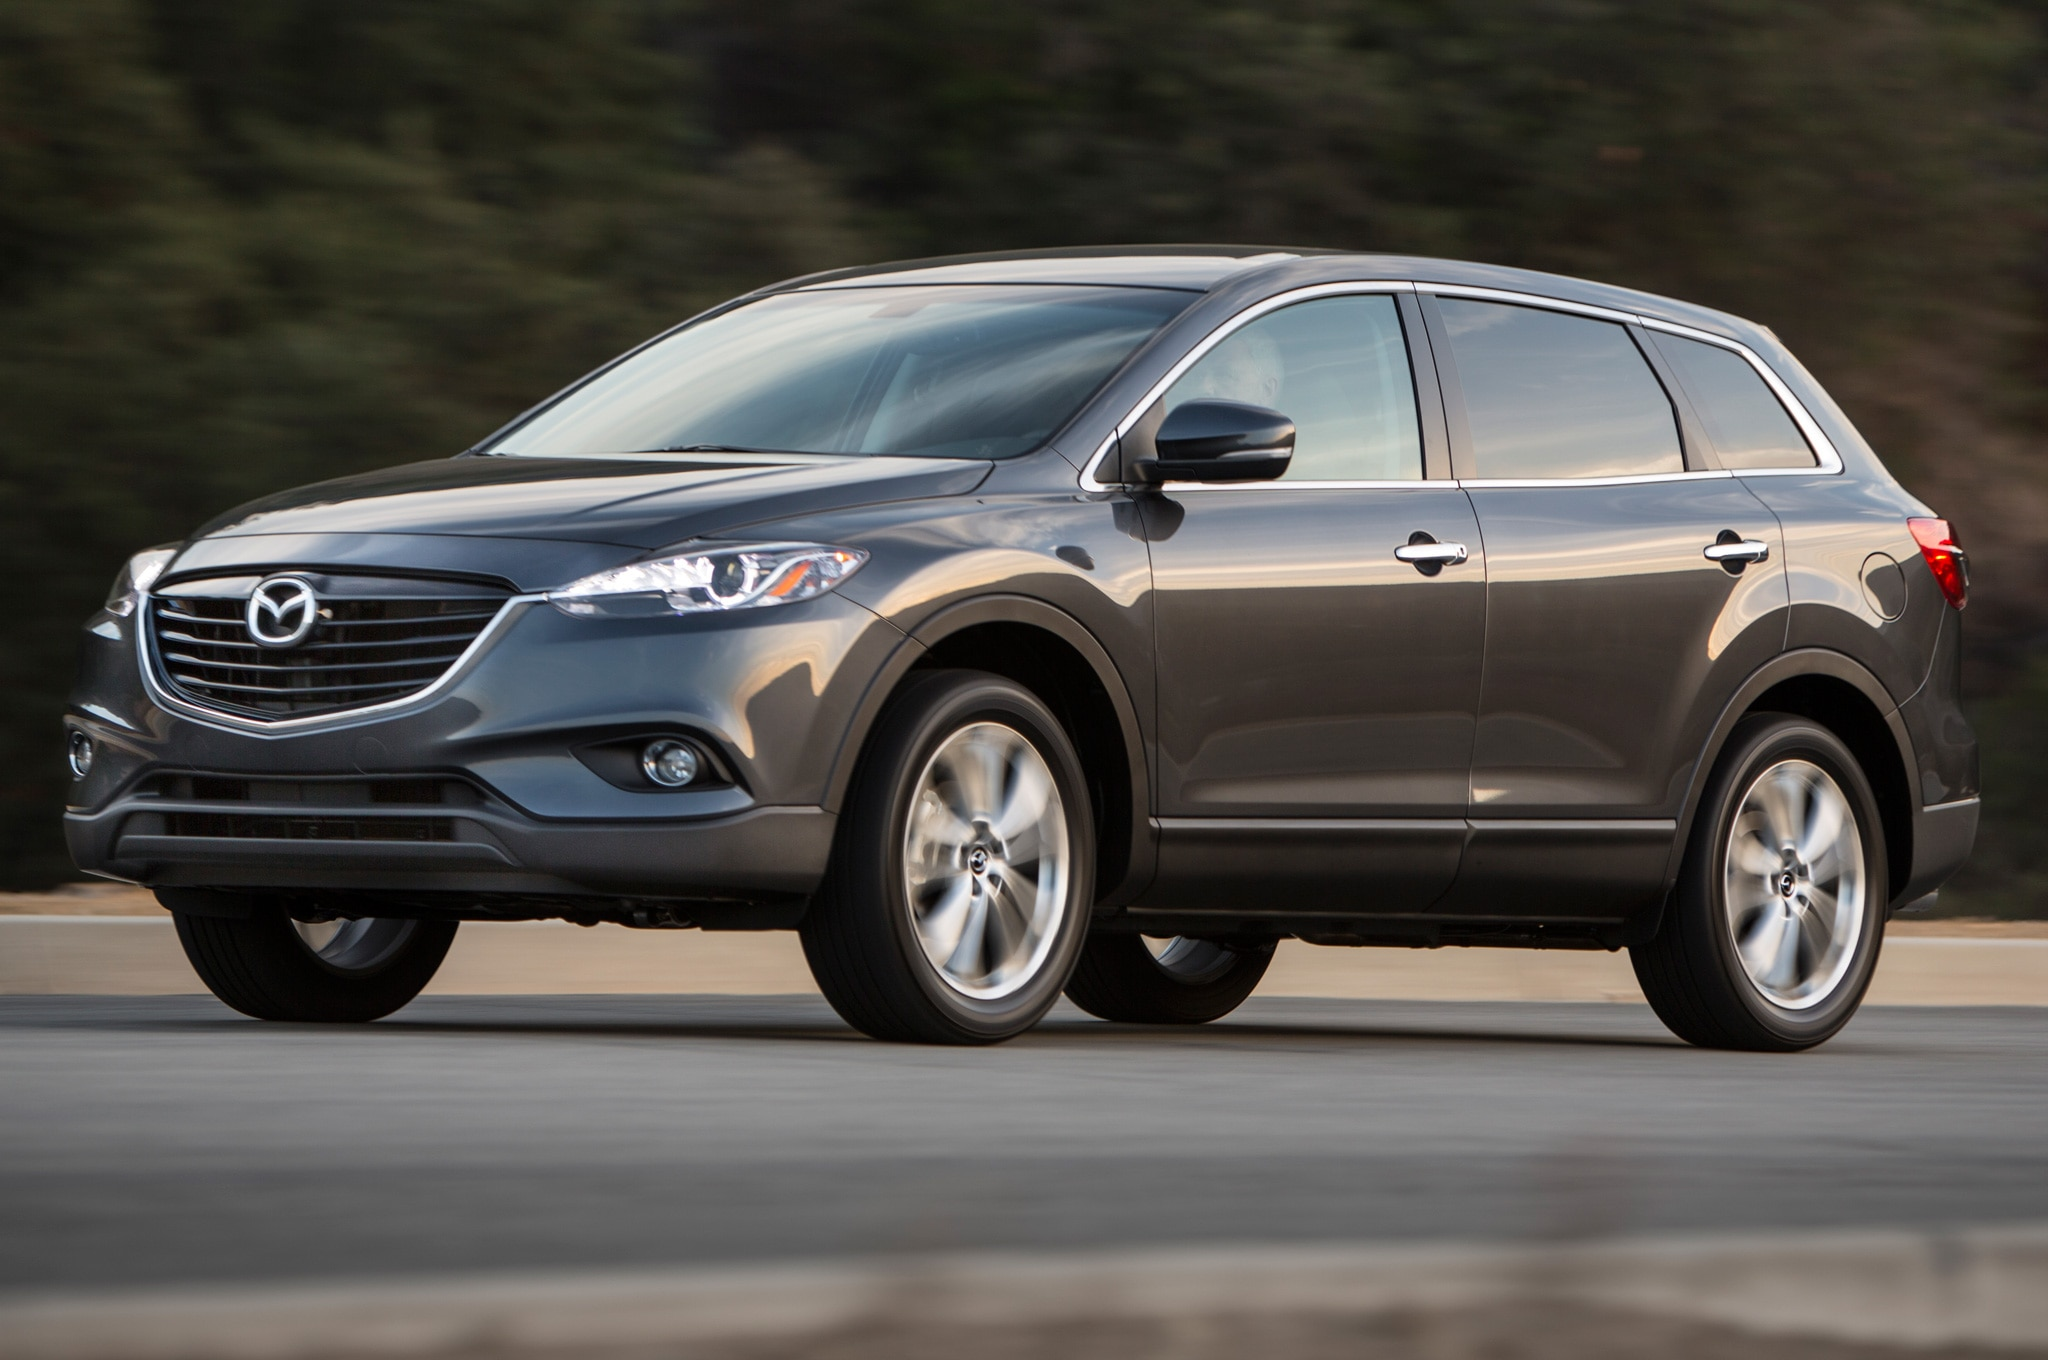 Mazda Airbag Recall >> Recalls: Dodge Charger Airbag Module, Mazda CX-9 Suspension